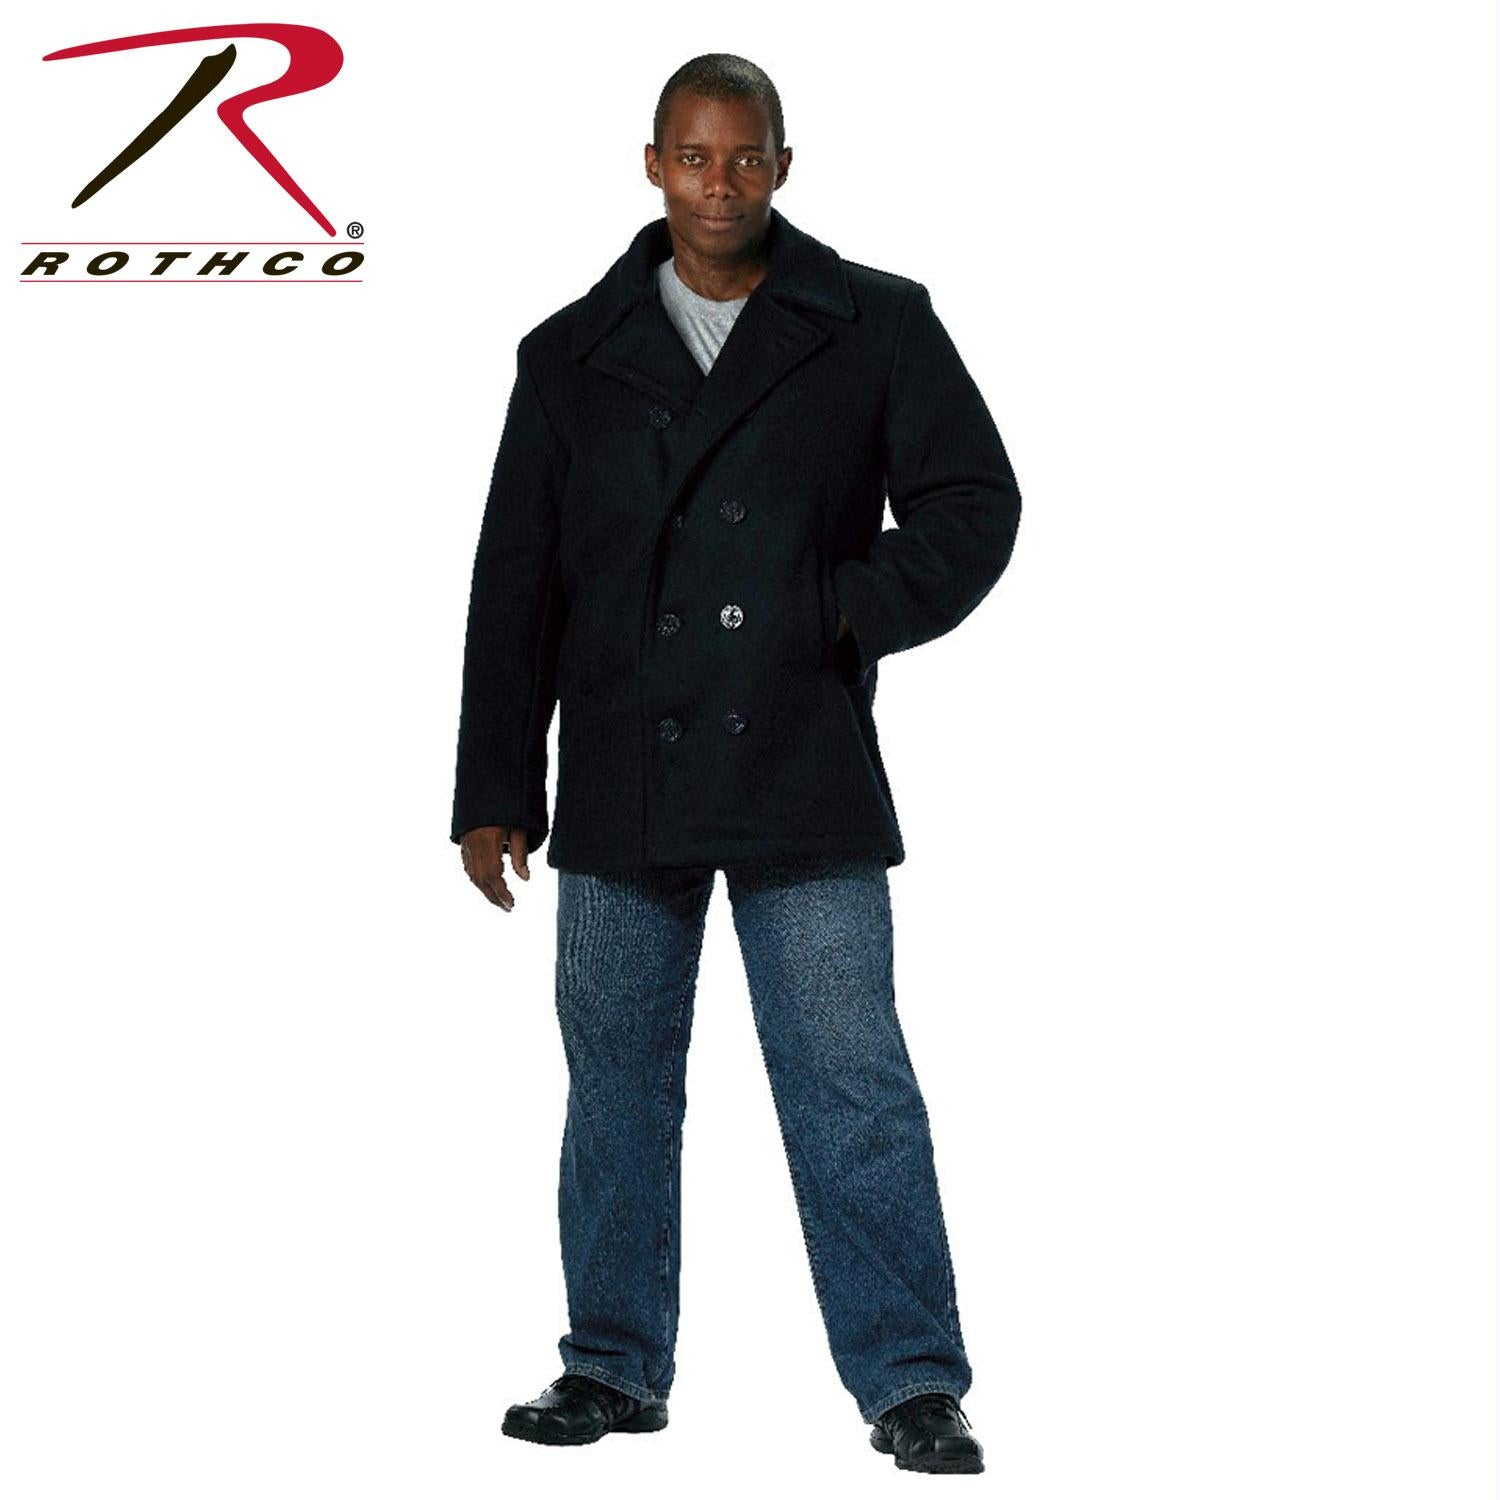 Rothco US Navy Type Pea Coat